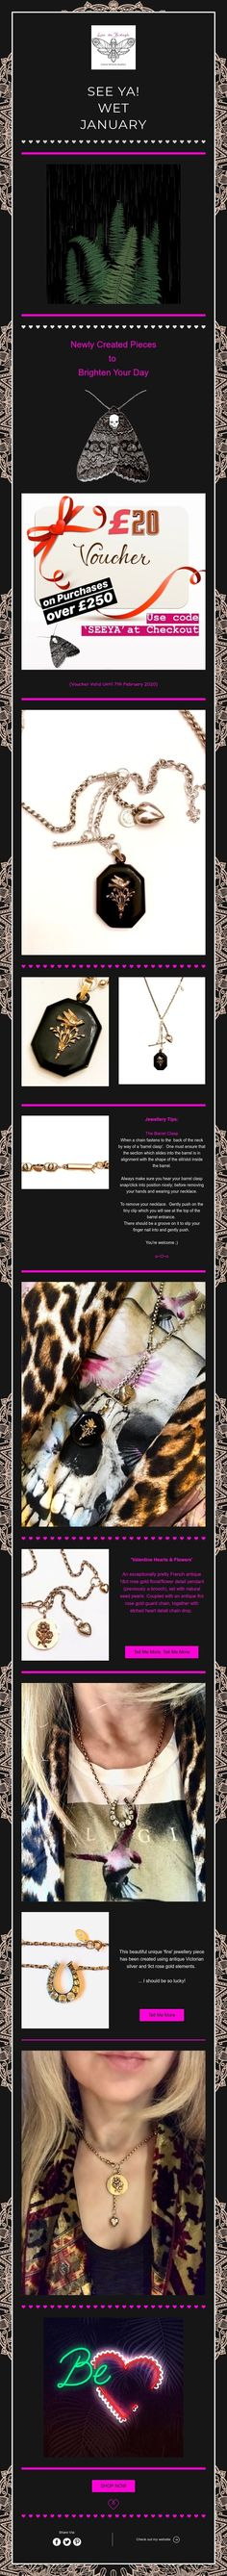 New Creations & Special Voucher Code